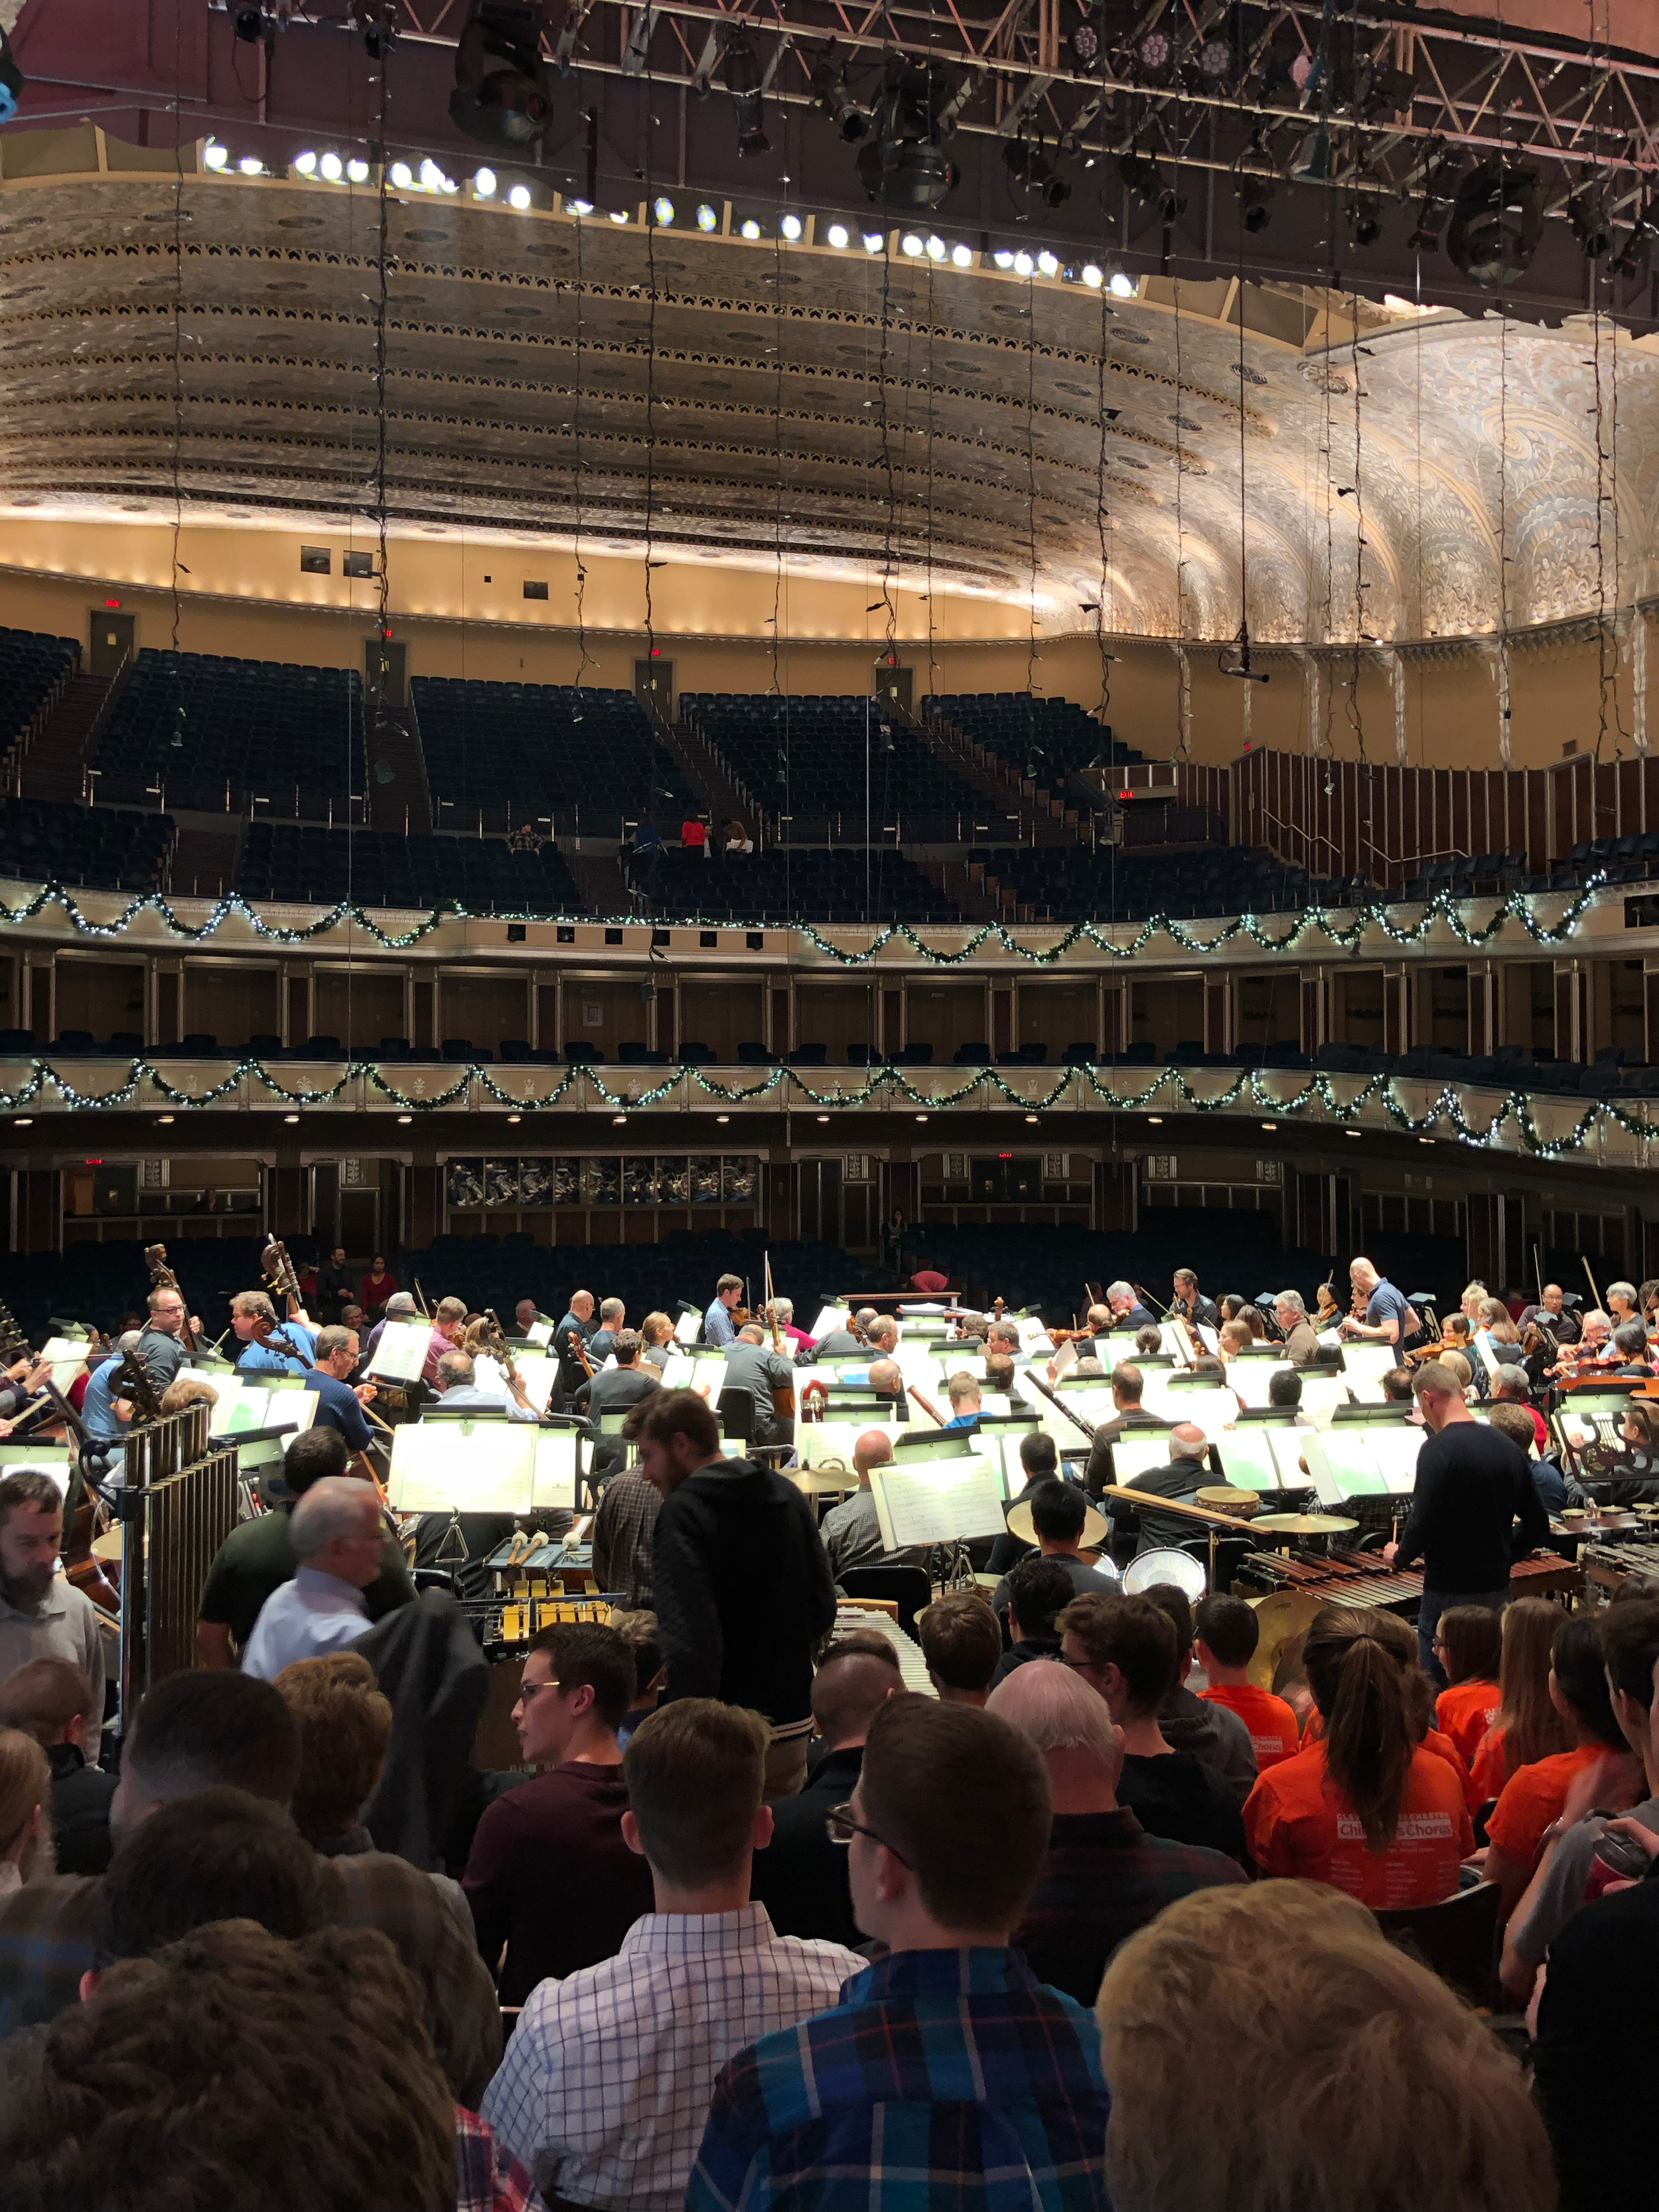 This may look a bit chaotic, but once the conductor takes the podium, it's all focused.